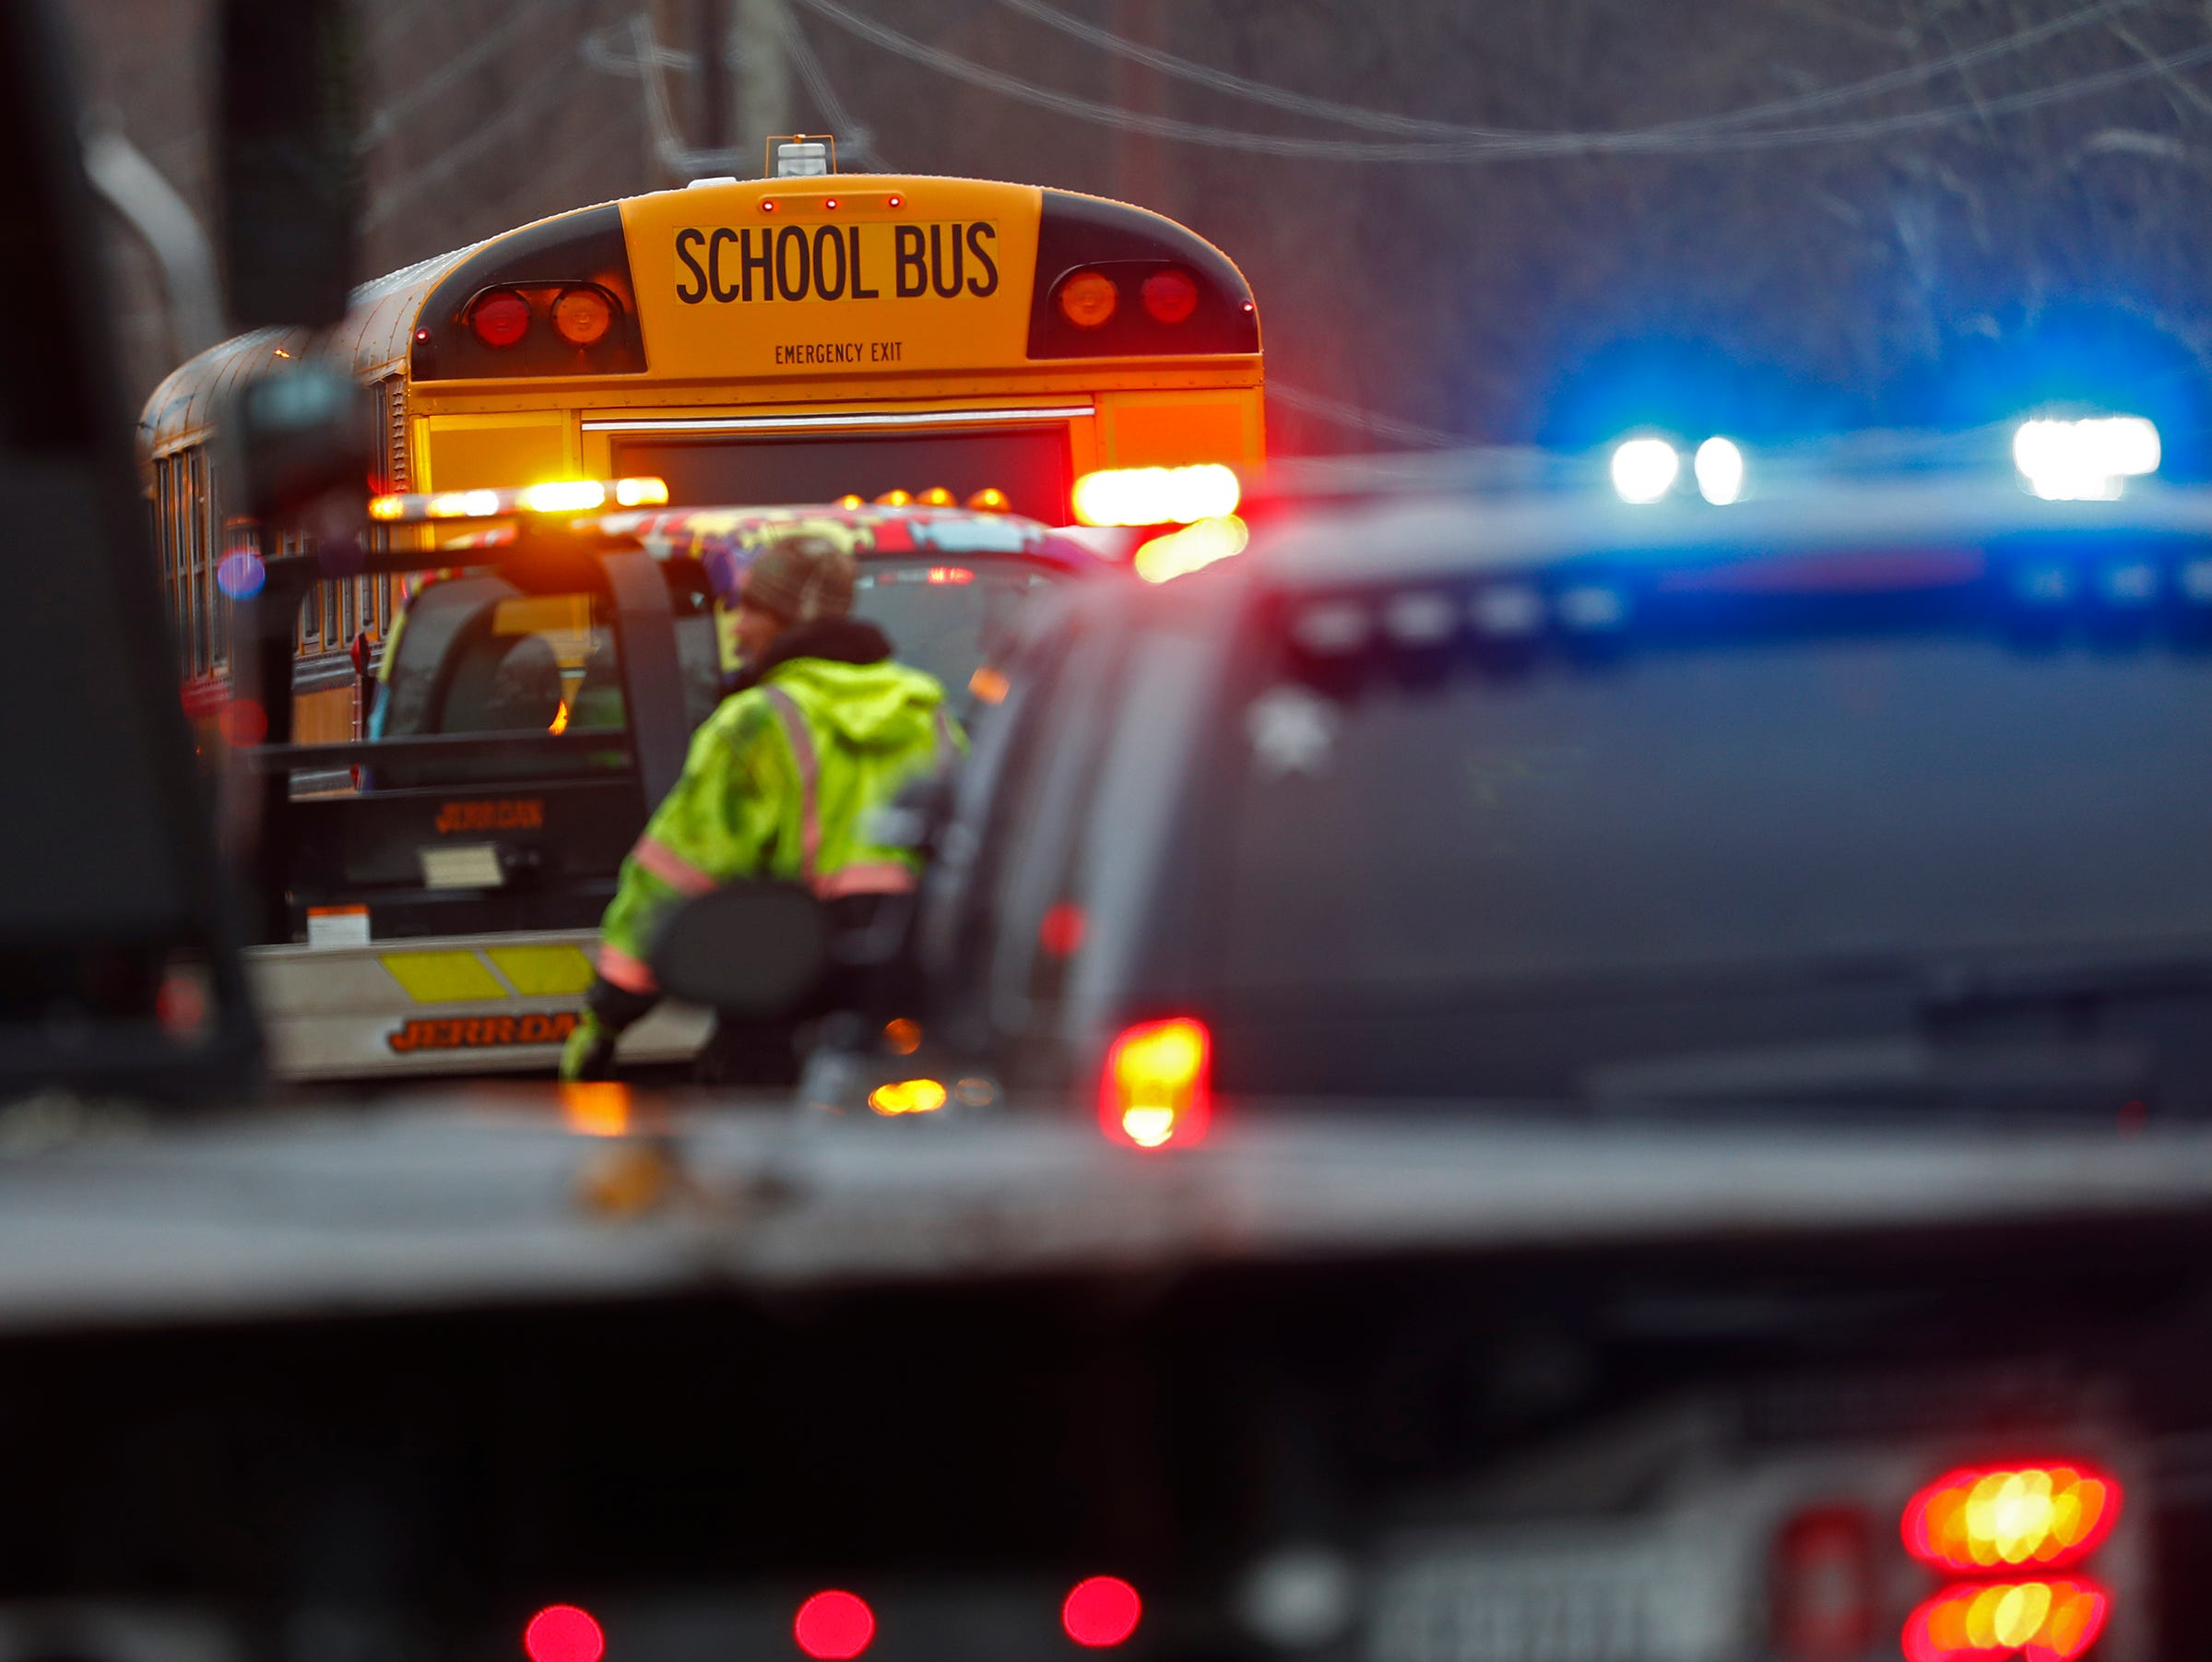 A school bus was brought to the scene for people waiting for their cars to be towed, as clean-up continues after a multi-car pileup due to slick conditions, on 96th St. near Hazel Dell Parkway, Thursday, Nov. 29, 2018.